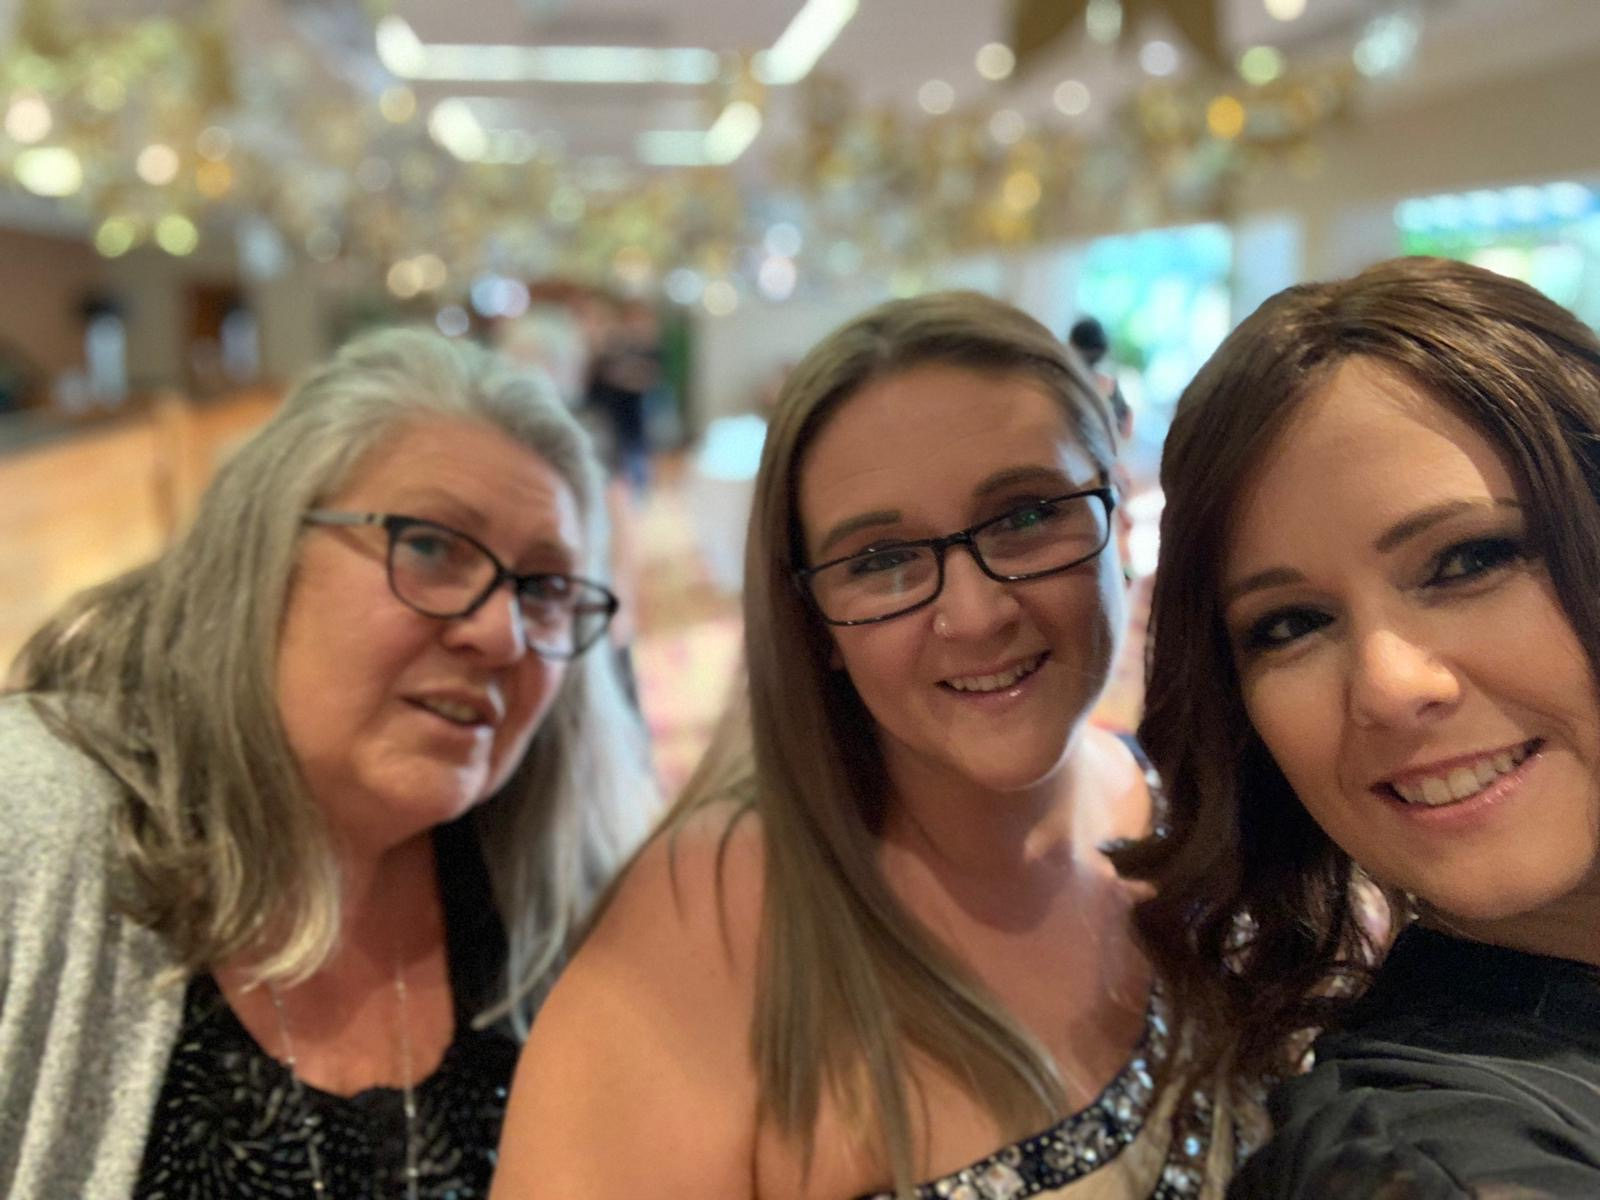 The Butterfly awards 2019